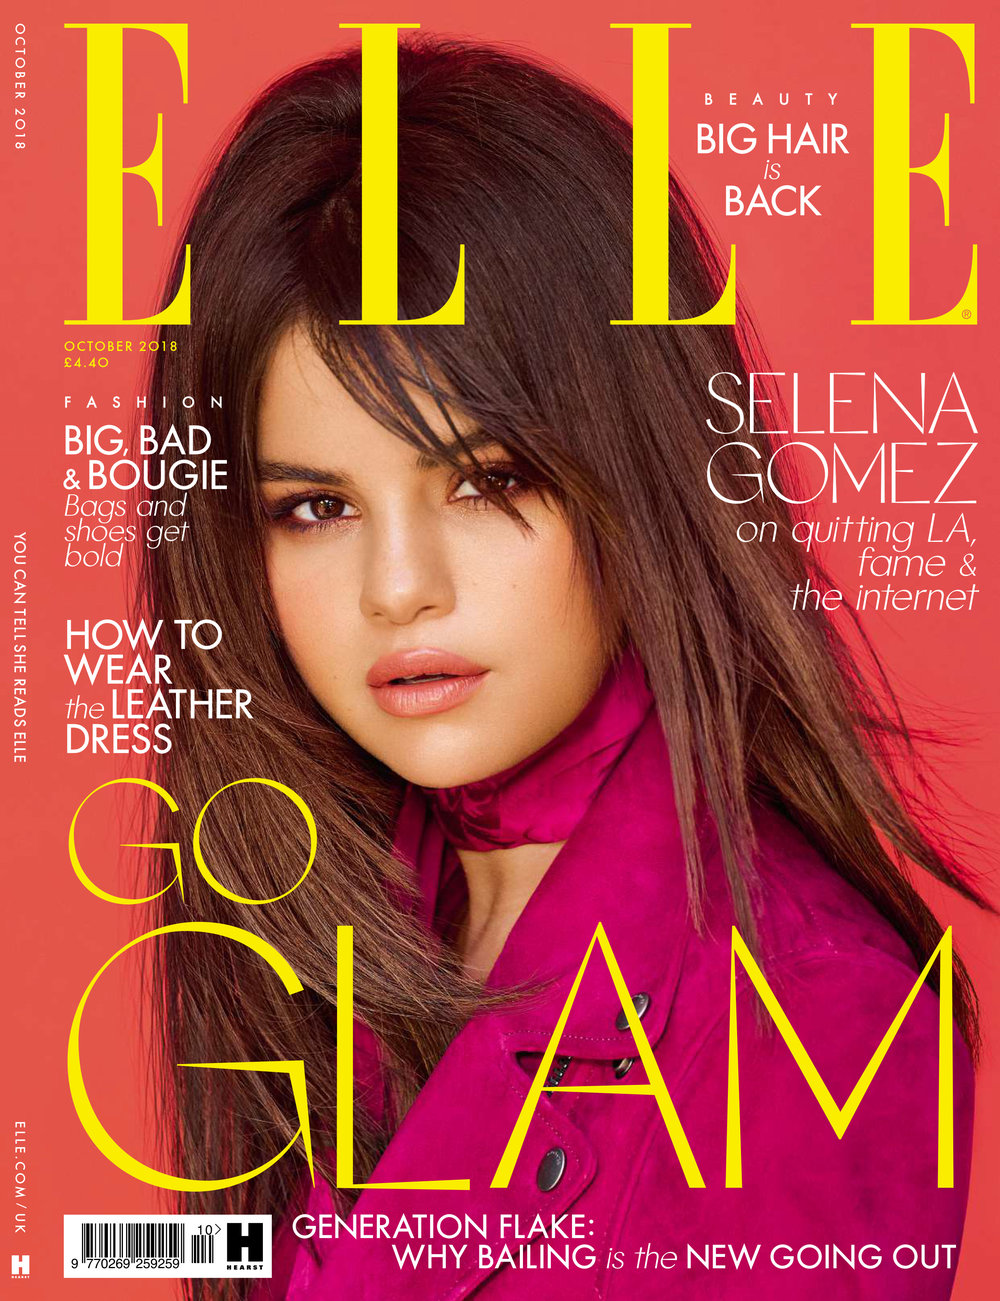 Elle_oct18_cover.jpg